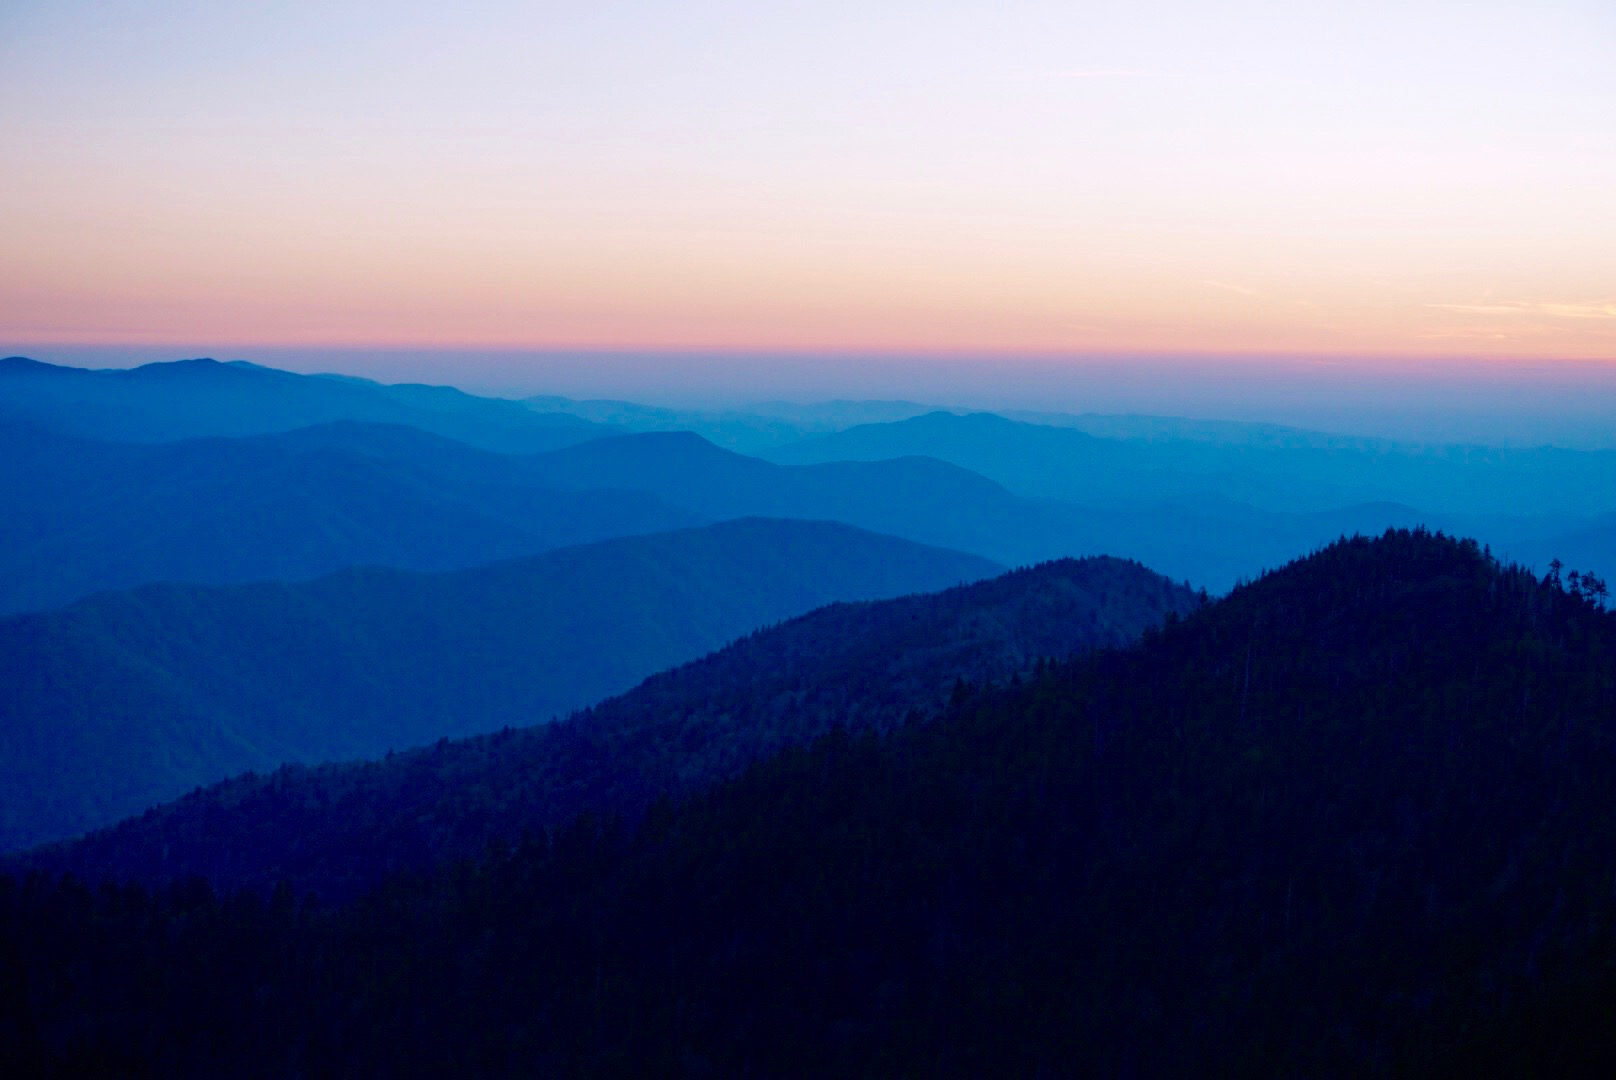 Sunset at Cliff Tops, Mt. LeConte, Great Smoky Mountains